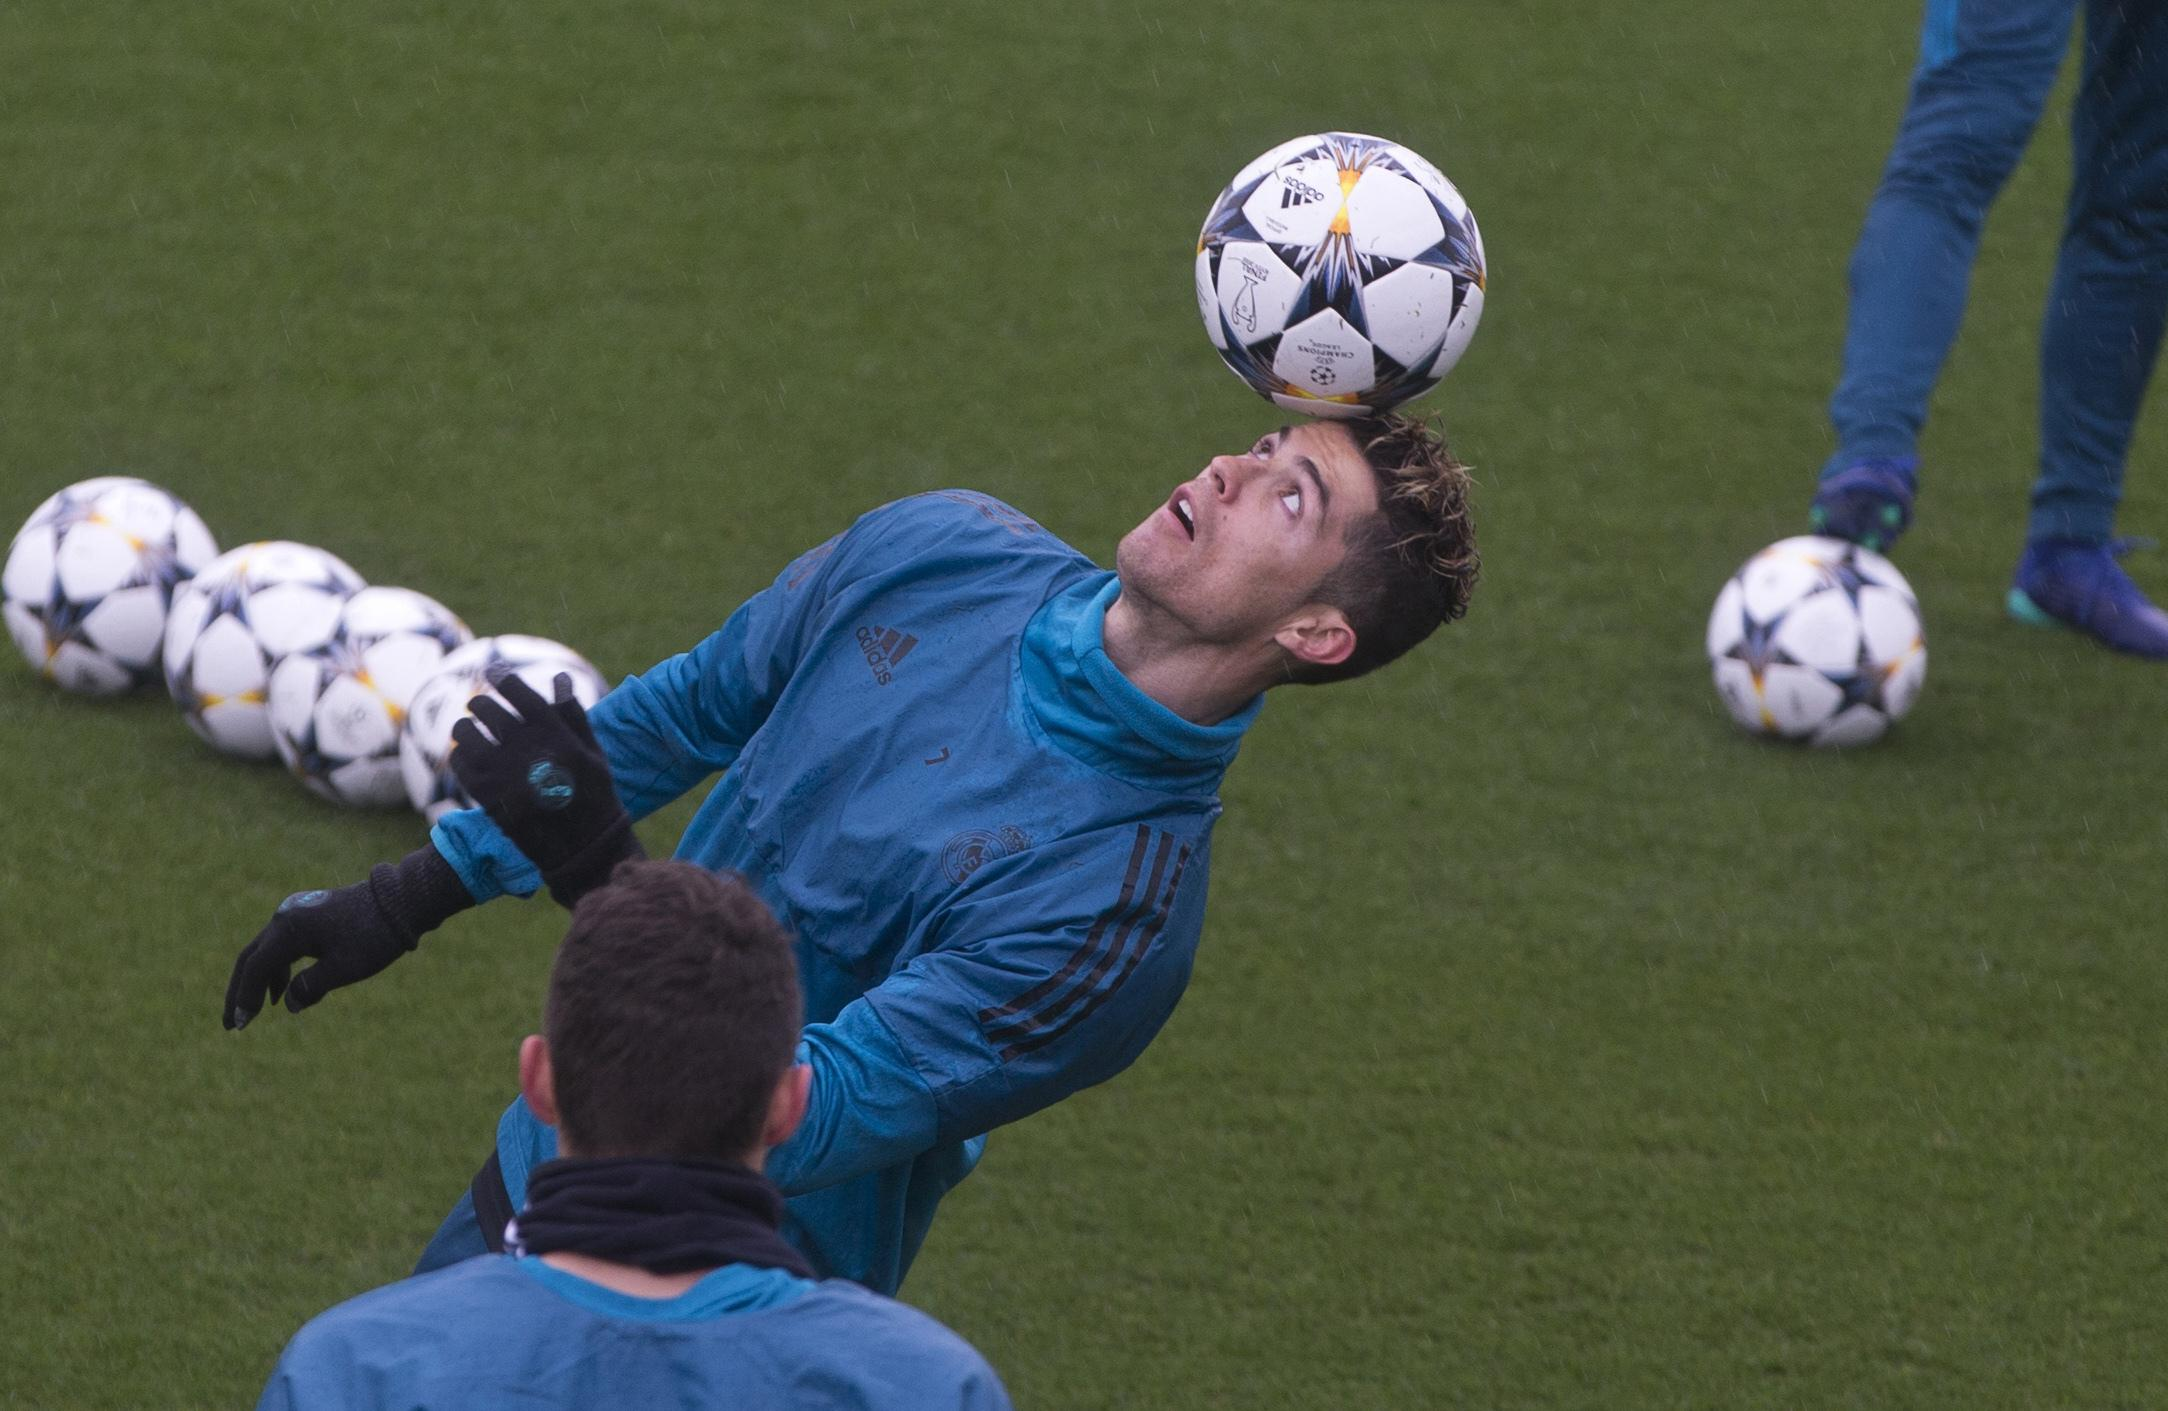 ef3673948c7 Real Madrid s Cristiano Ronaldo controls the ball during a training session  in Madrid